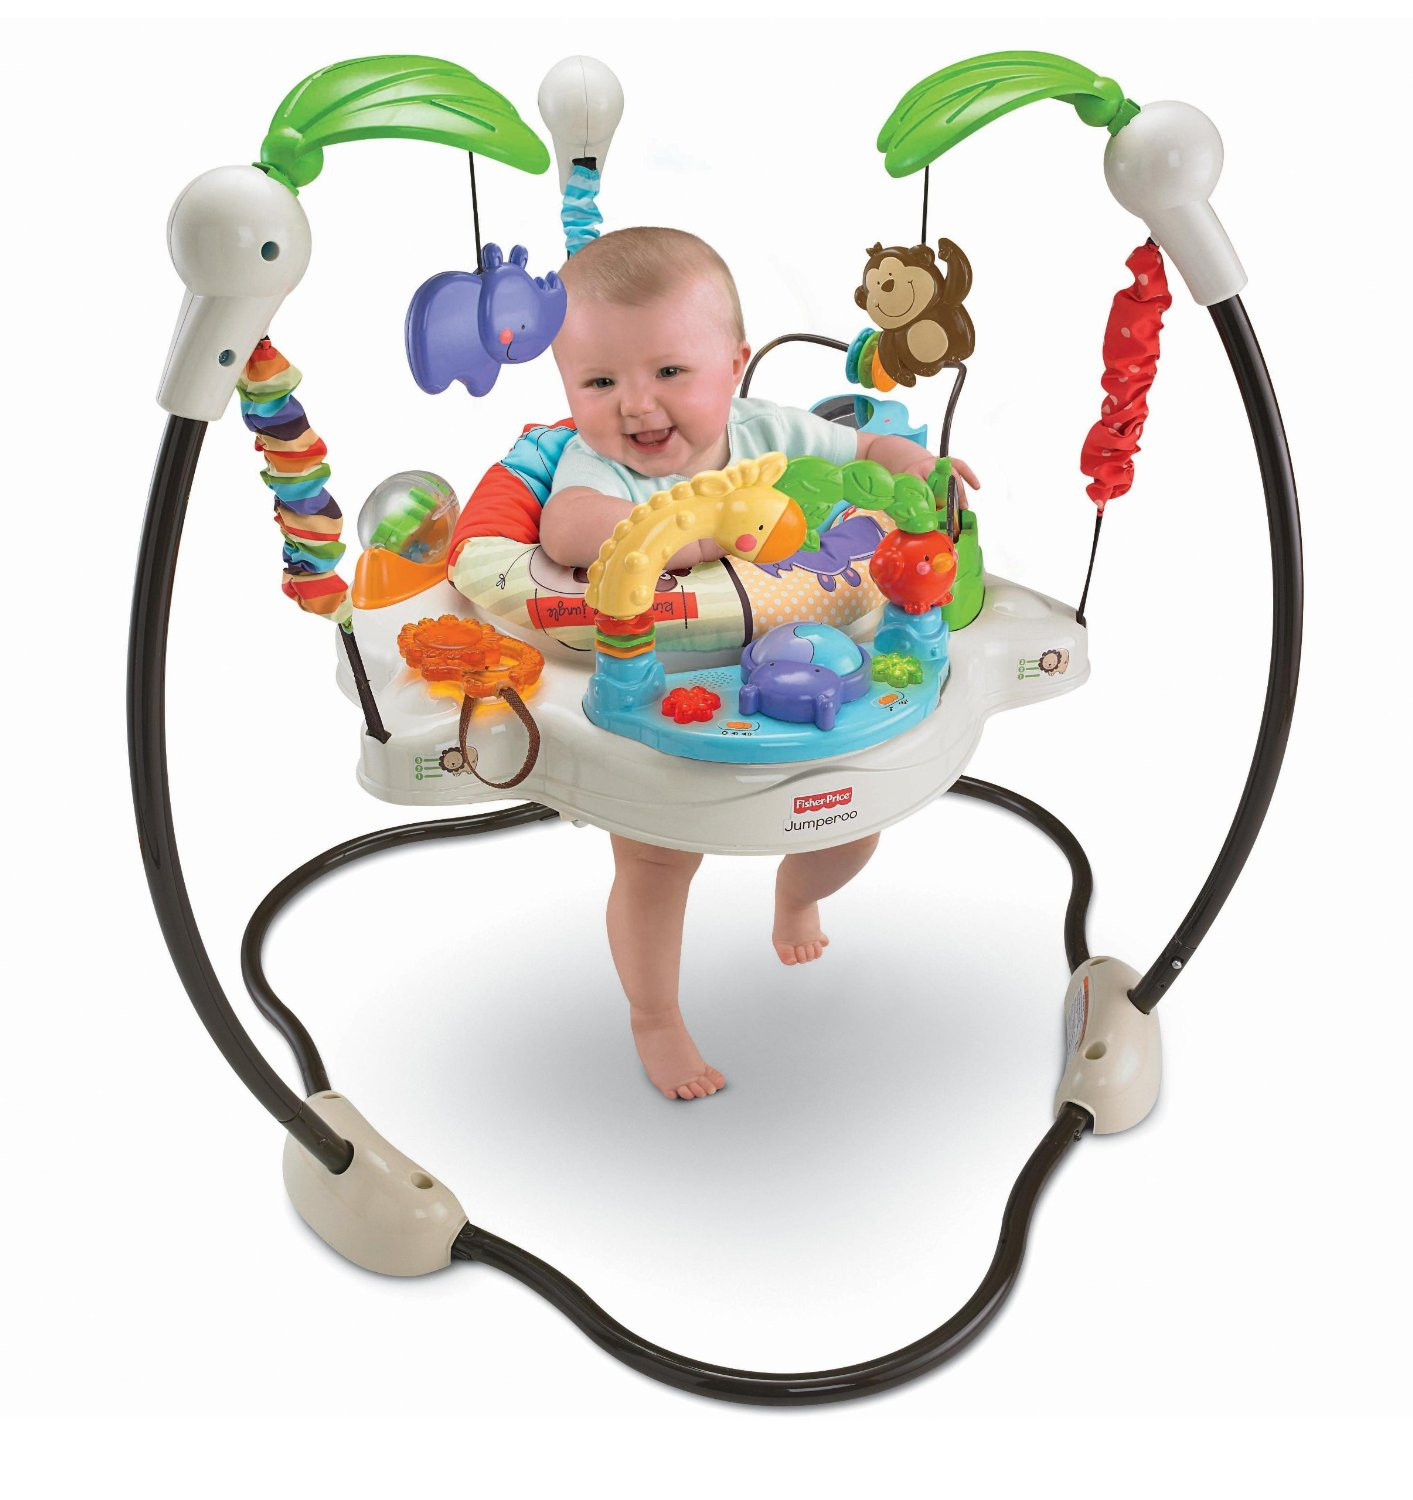 Entertain your baby with baby jumper